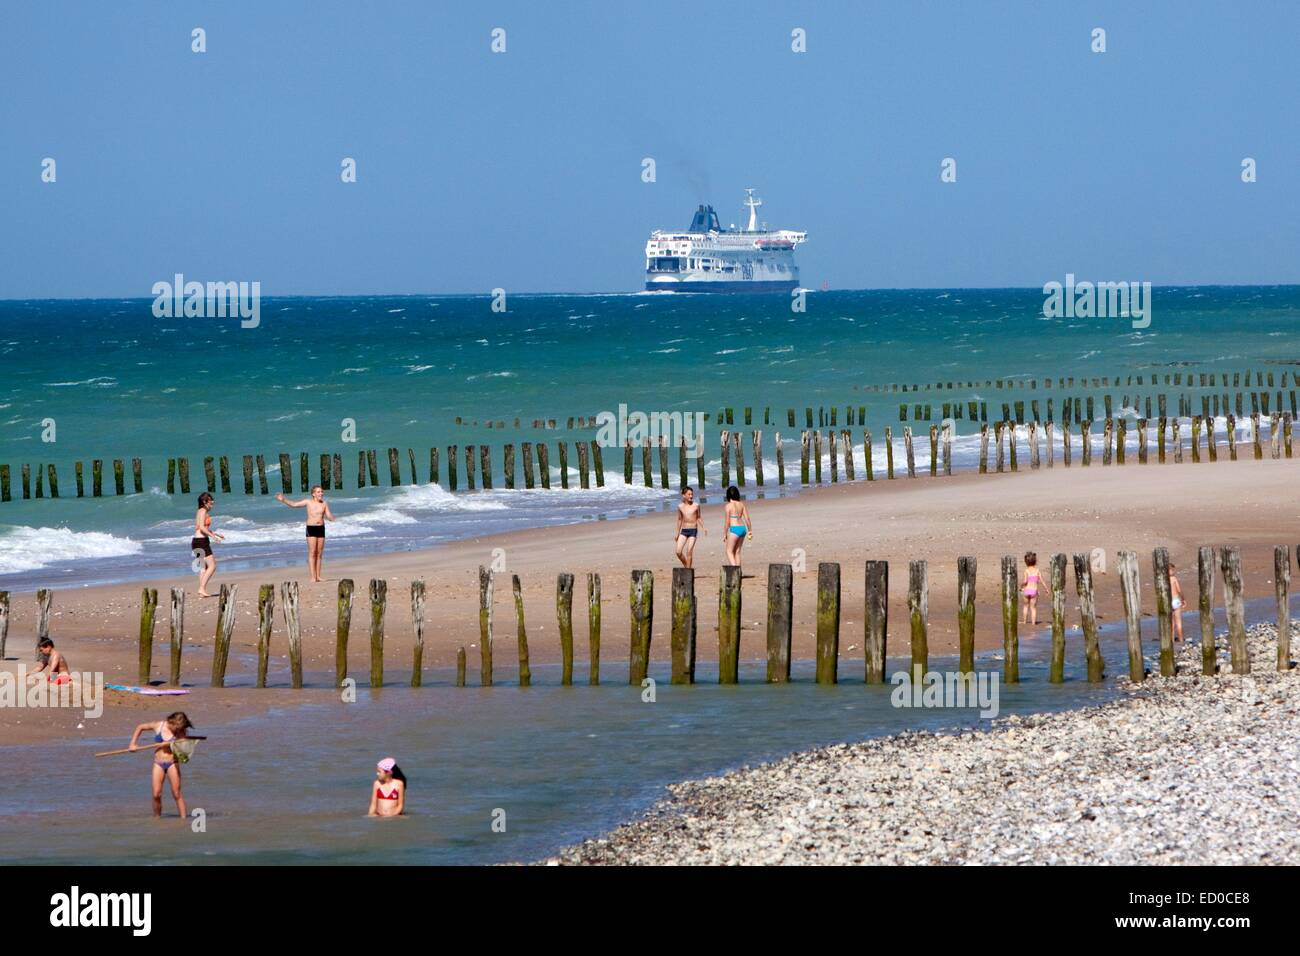 France, Pas de Calais, Sangatte, holidaymakers and ferry company P&O performing the Calais Dover link - Stock Image